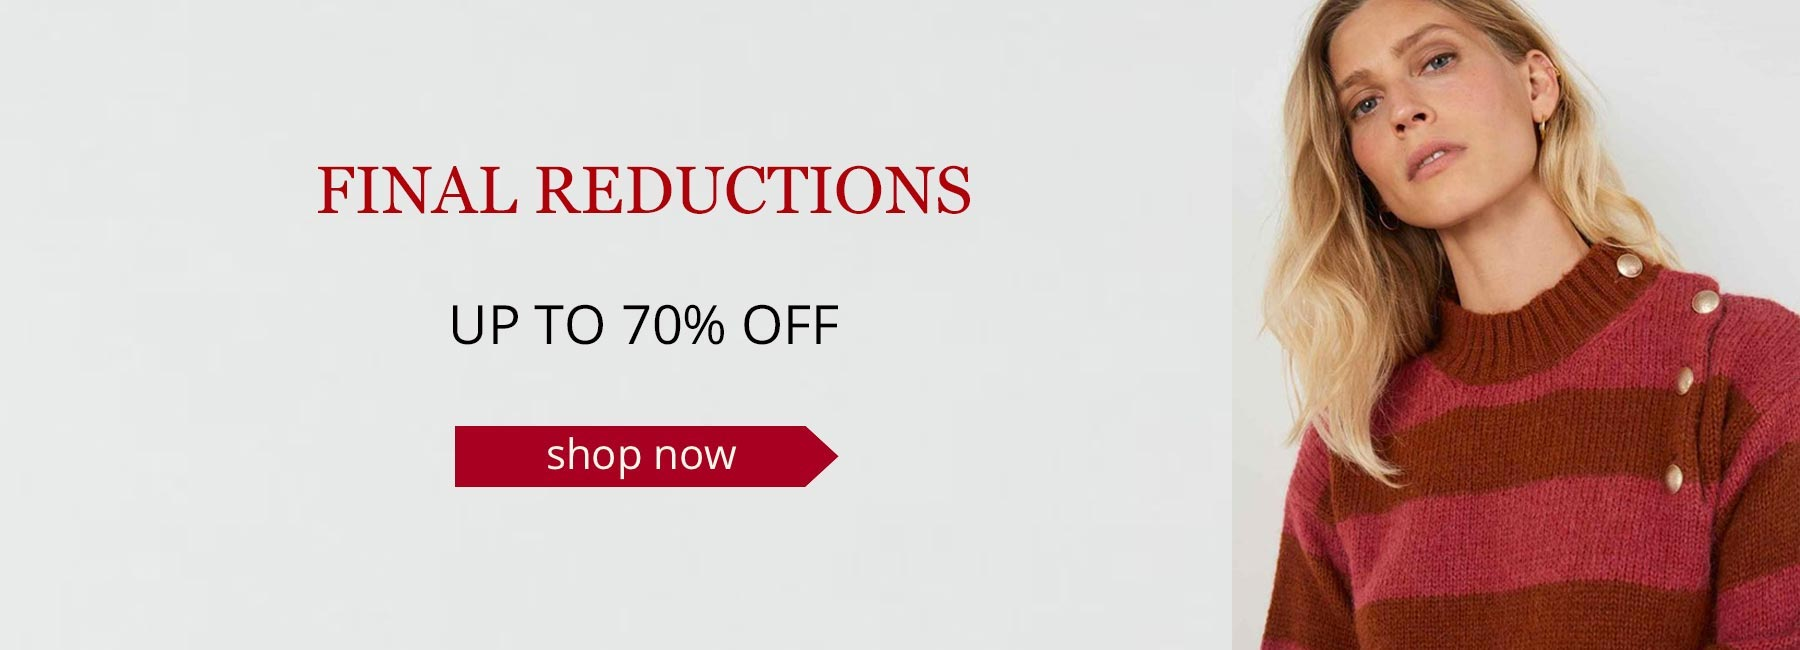 Final Reductions up to 70% off